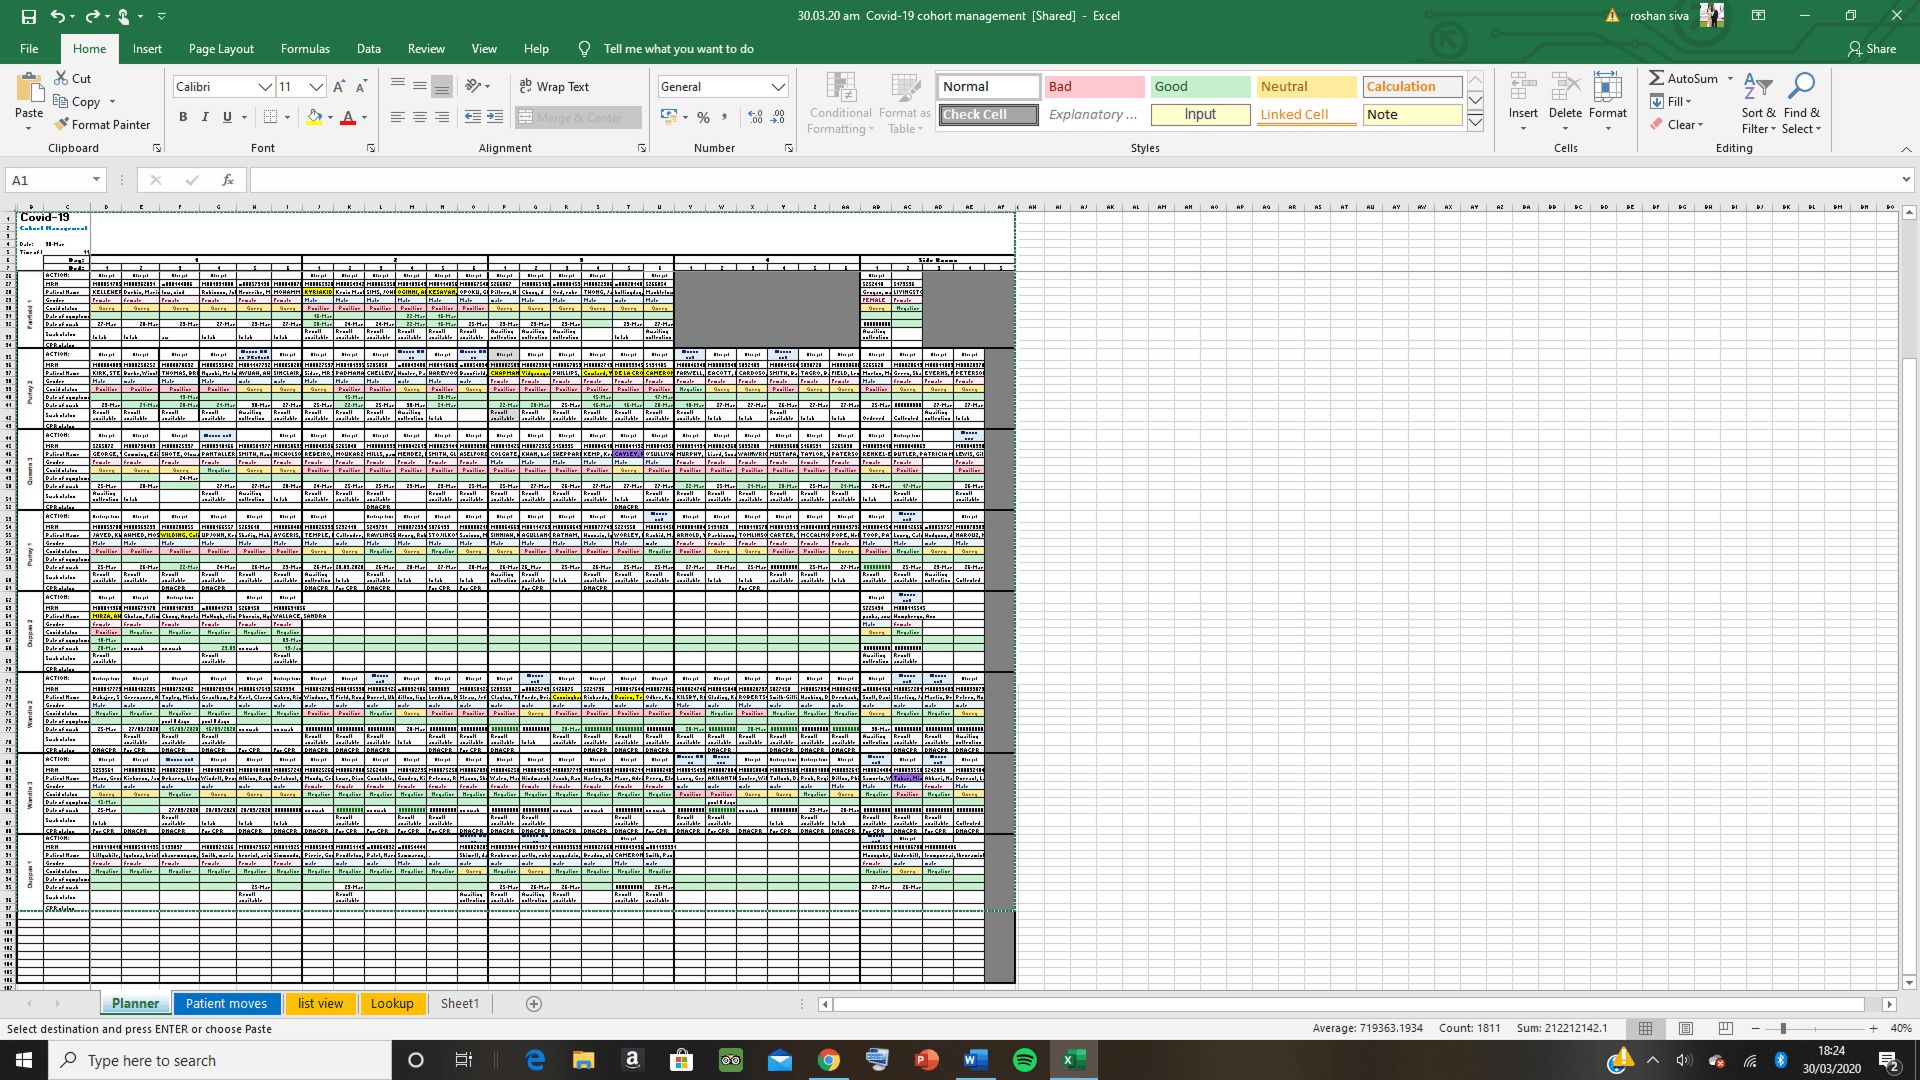 """Excel database / electronic copy of the """"Rosh board"""""""